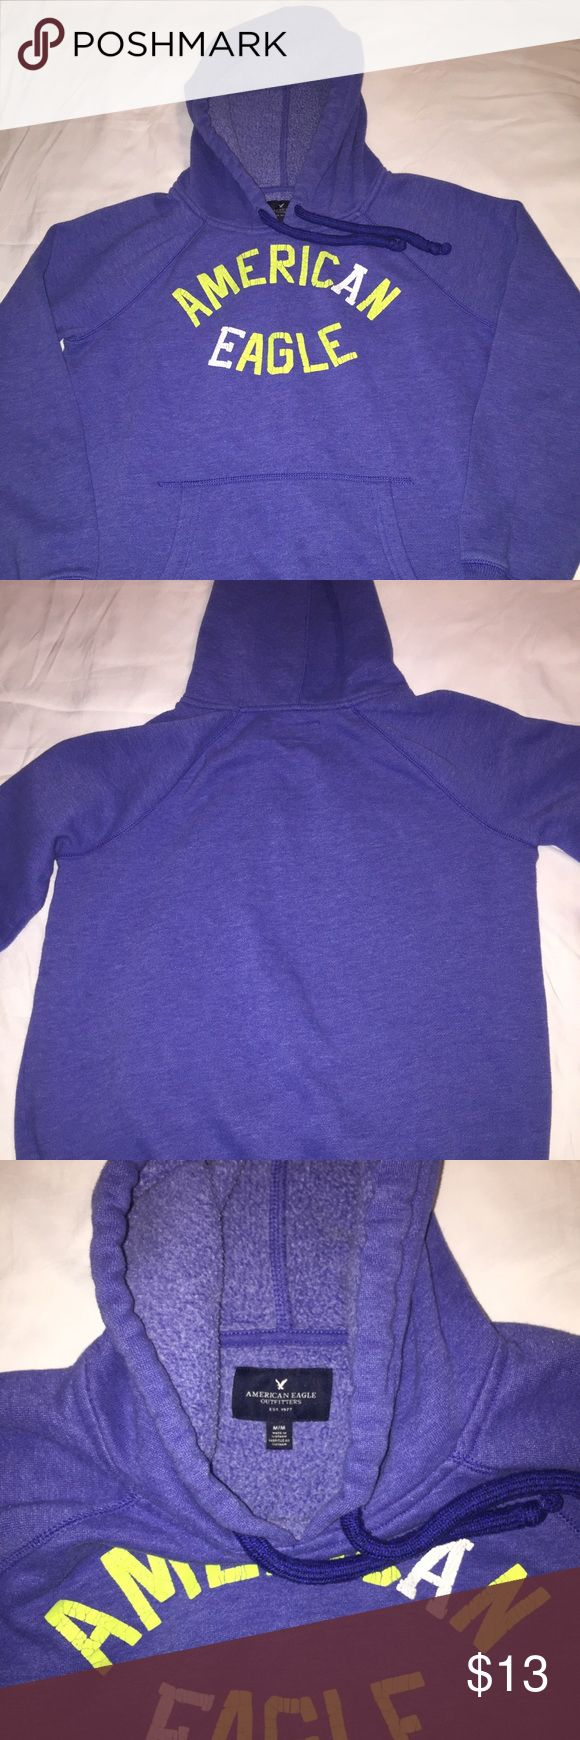 American Eagle sweatshirt American eagle sweatshirt. Good condition! American Eagle Outfitters Tops Sweatshirts & Hoodies